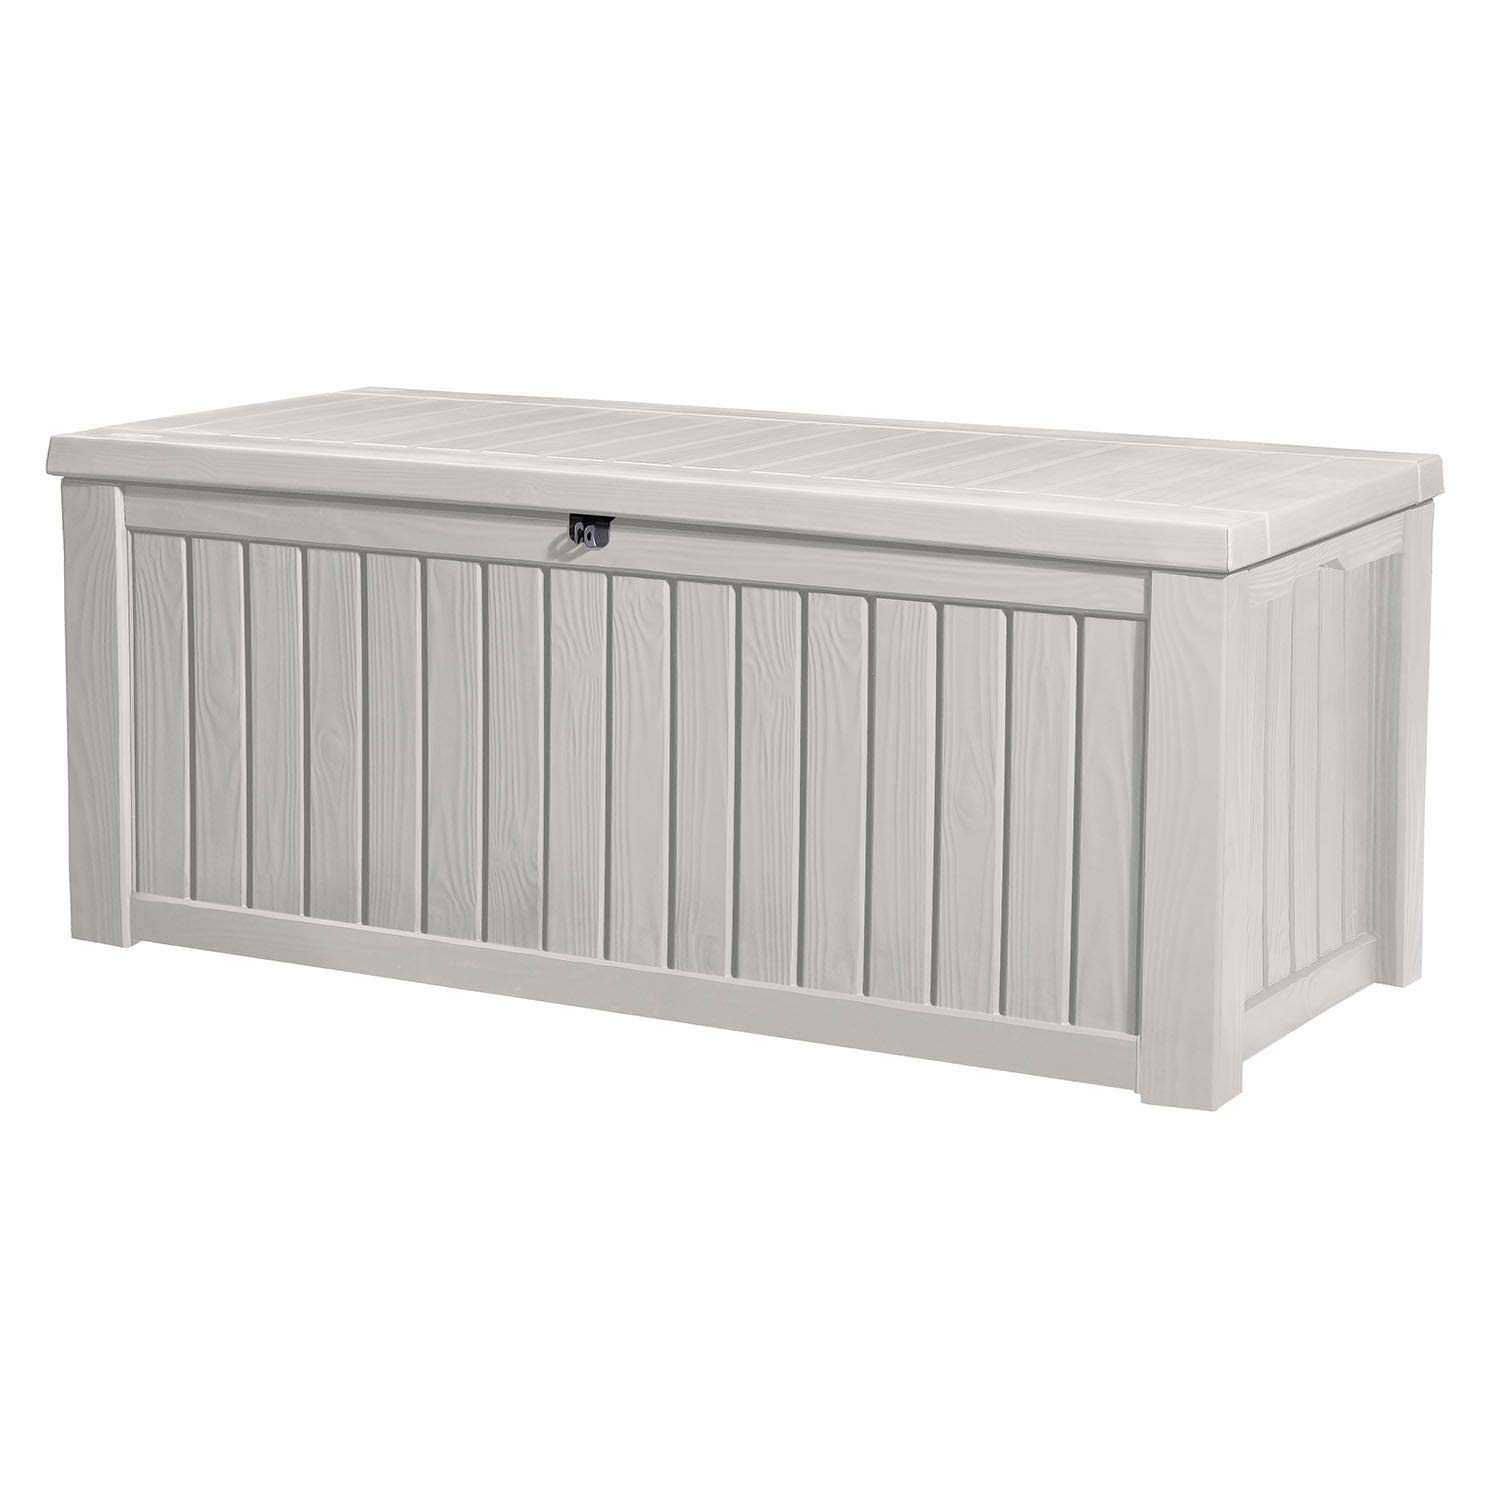 Keter Rockwood Jumbo 150 GL / 570 L White Outdoor Deck Storage Box 17197729